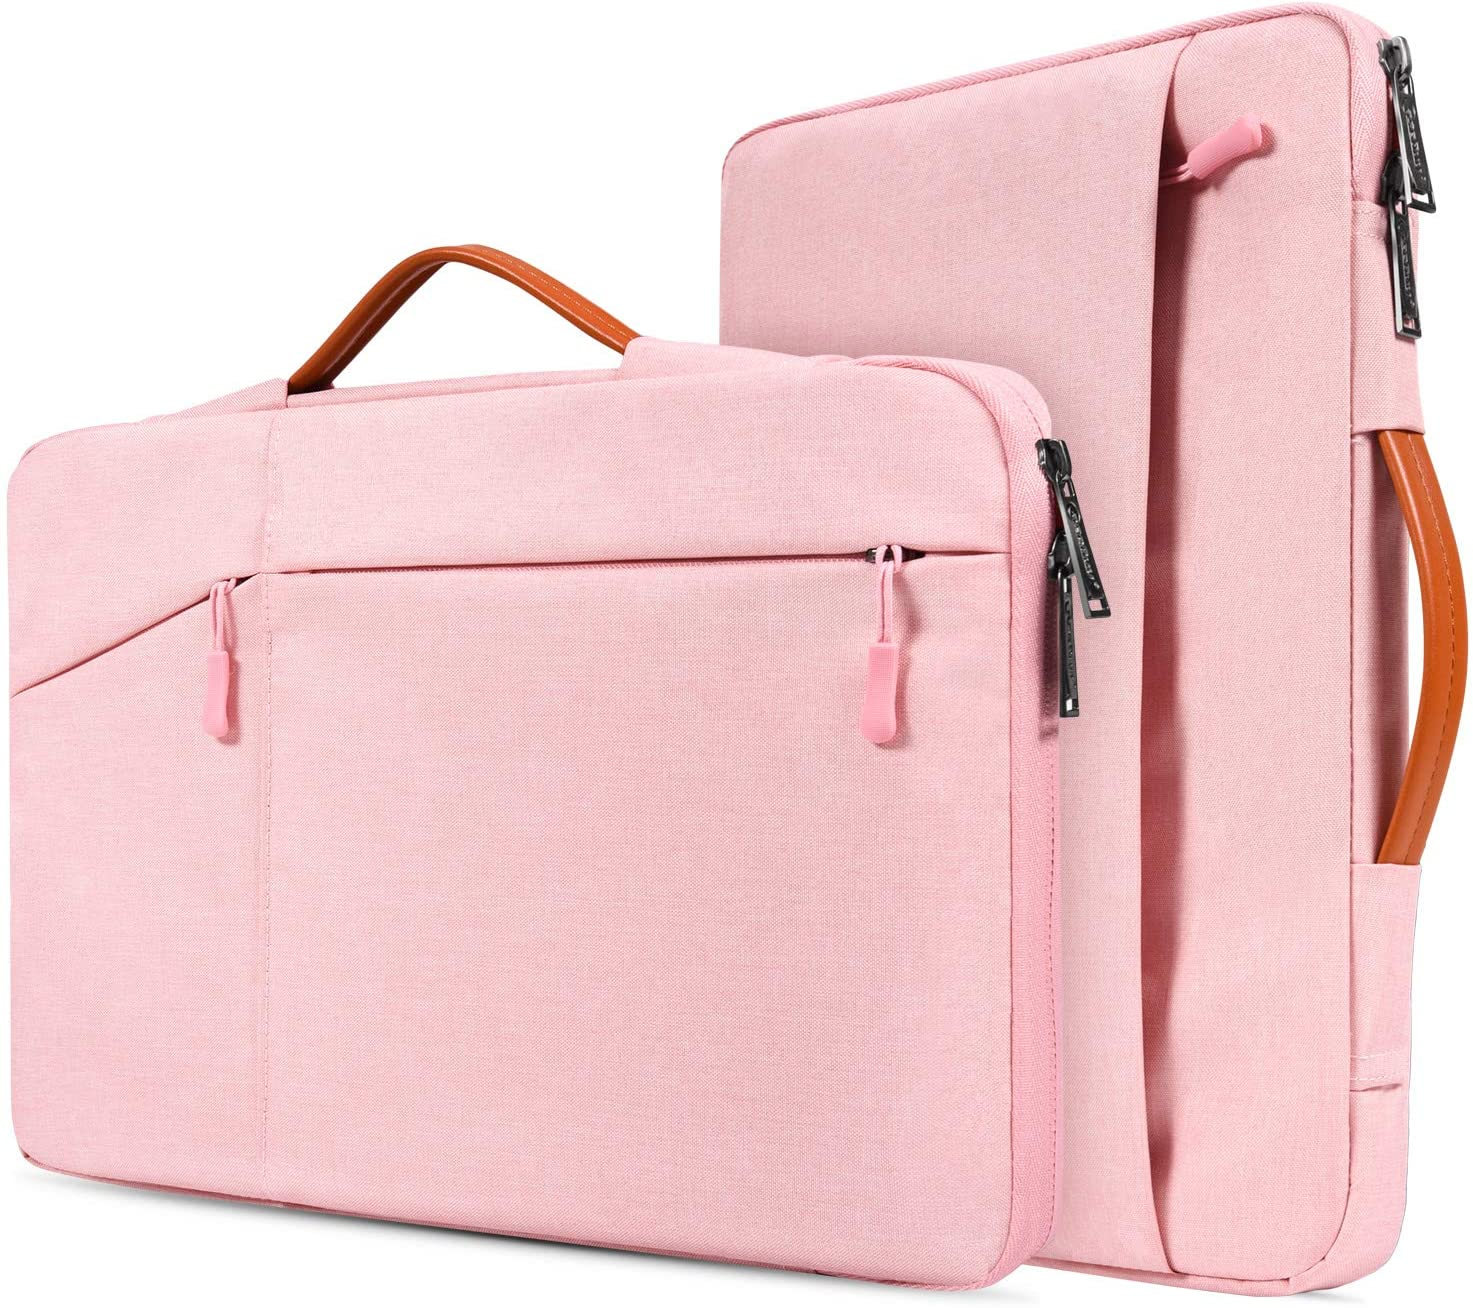 "15.6 Inch Waterpoof Laptop Briefcase Bag for Girls Women, Acer Chromebook 15/Aspire E 15/Aspire 3 5 15.6"", MSI GV62 GS65, HP ENVY x360 15, Lenovo, Dell Inspiron 15, 15.6"" Laptop Bag, Pink"